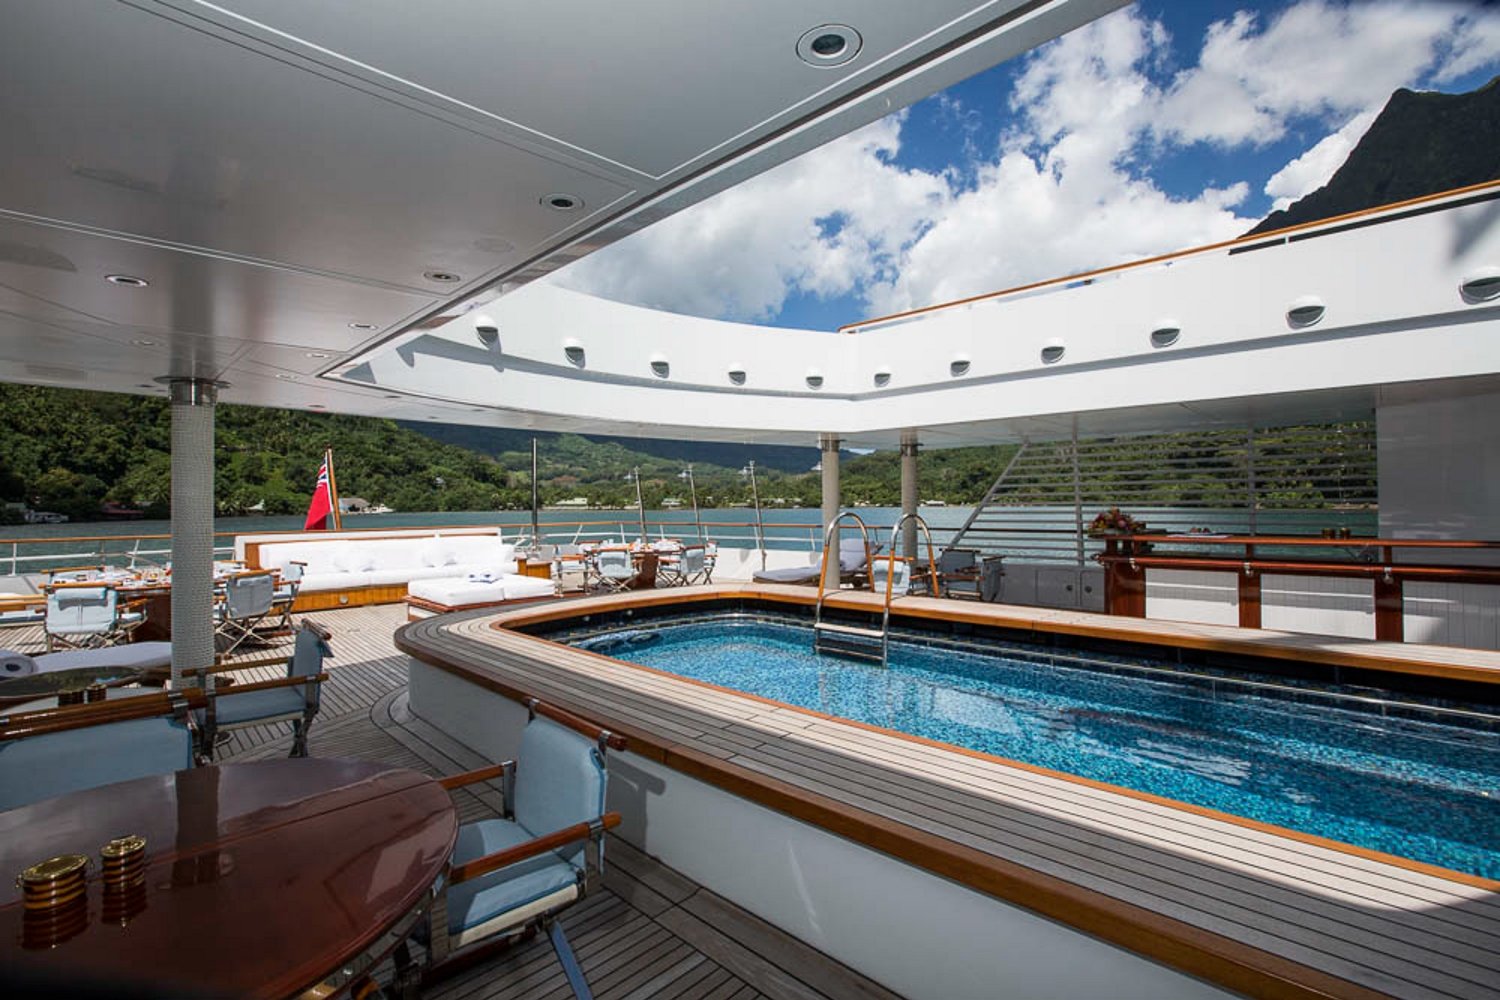 Massive Swimming Pool And Aft Deck With Bar And Seating